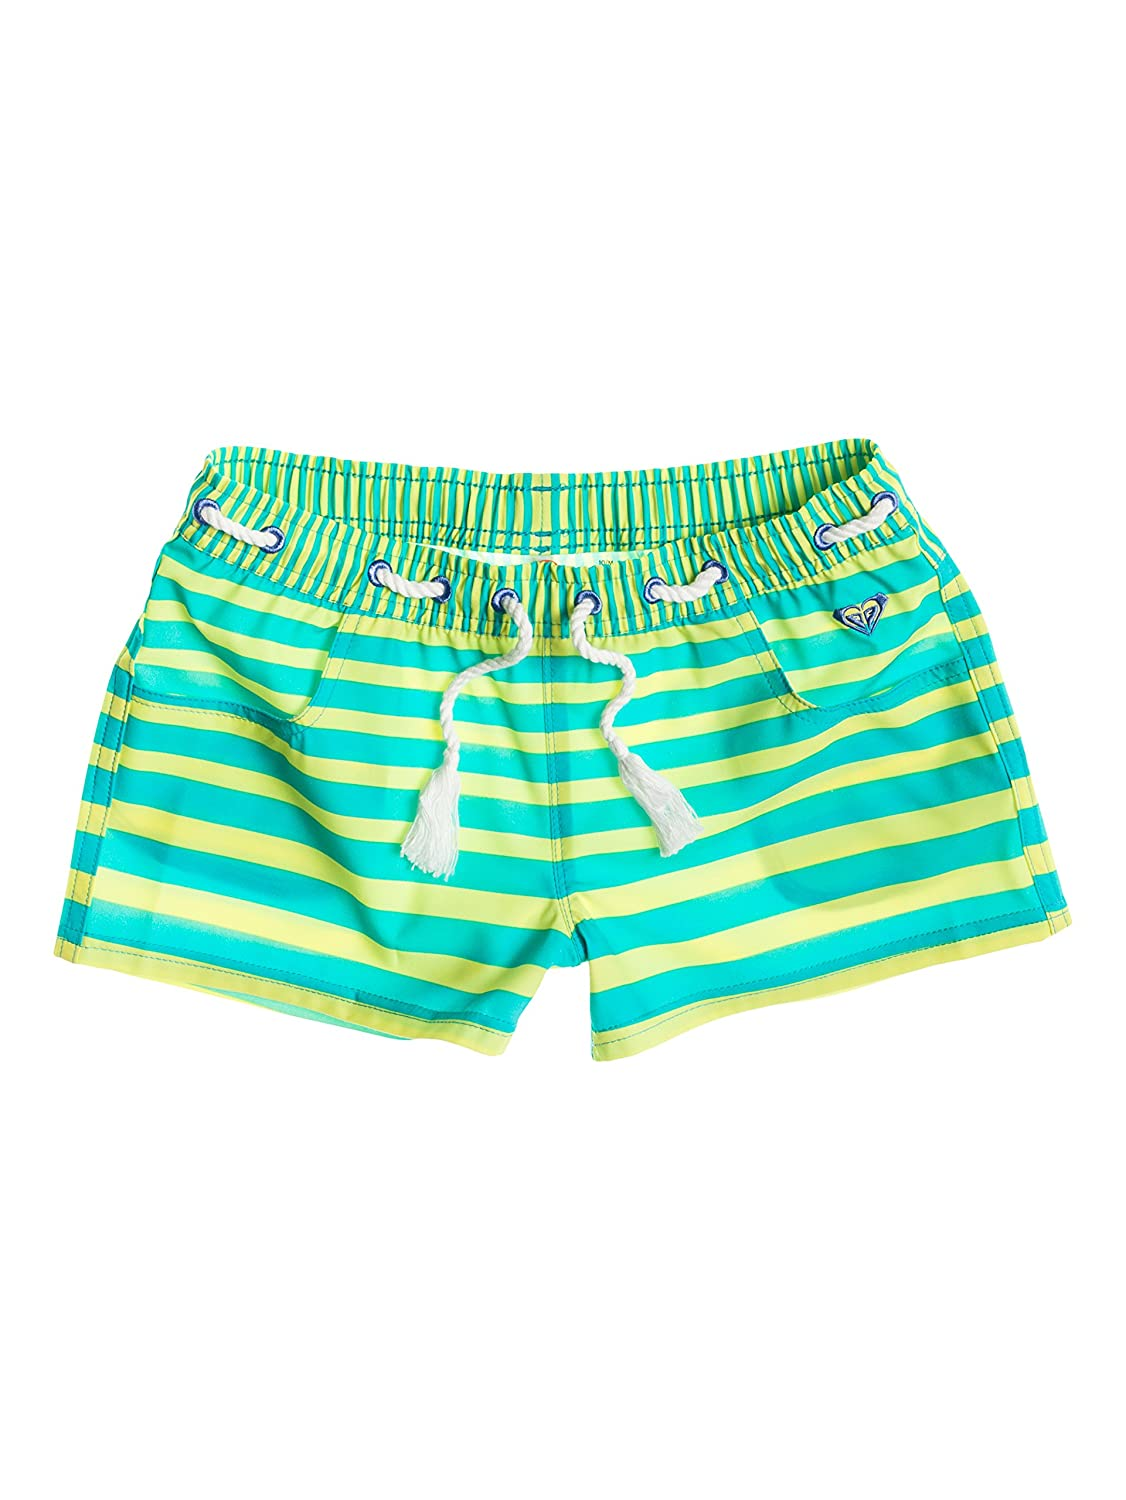 Roxy Girl's All Aboard 2 Striped Shorts